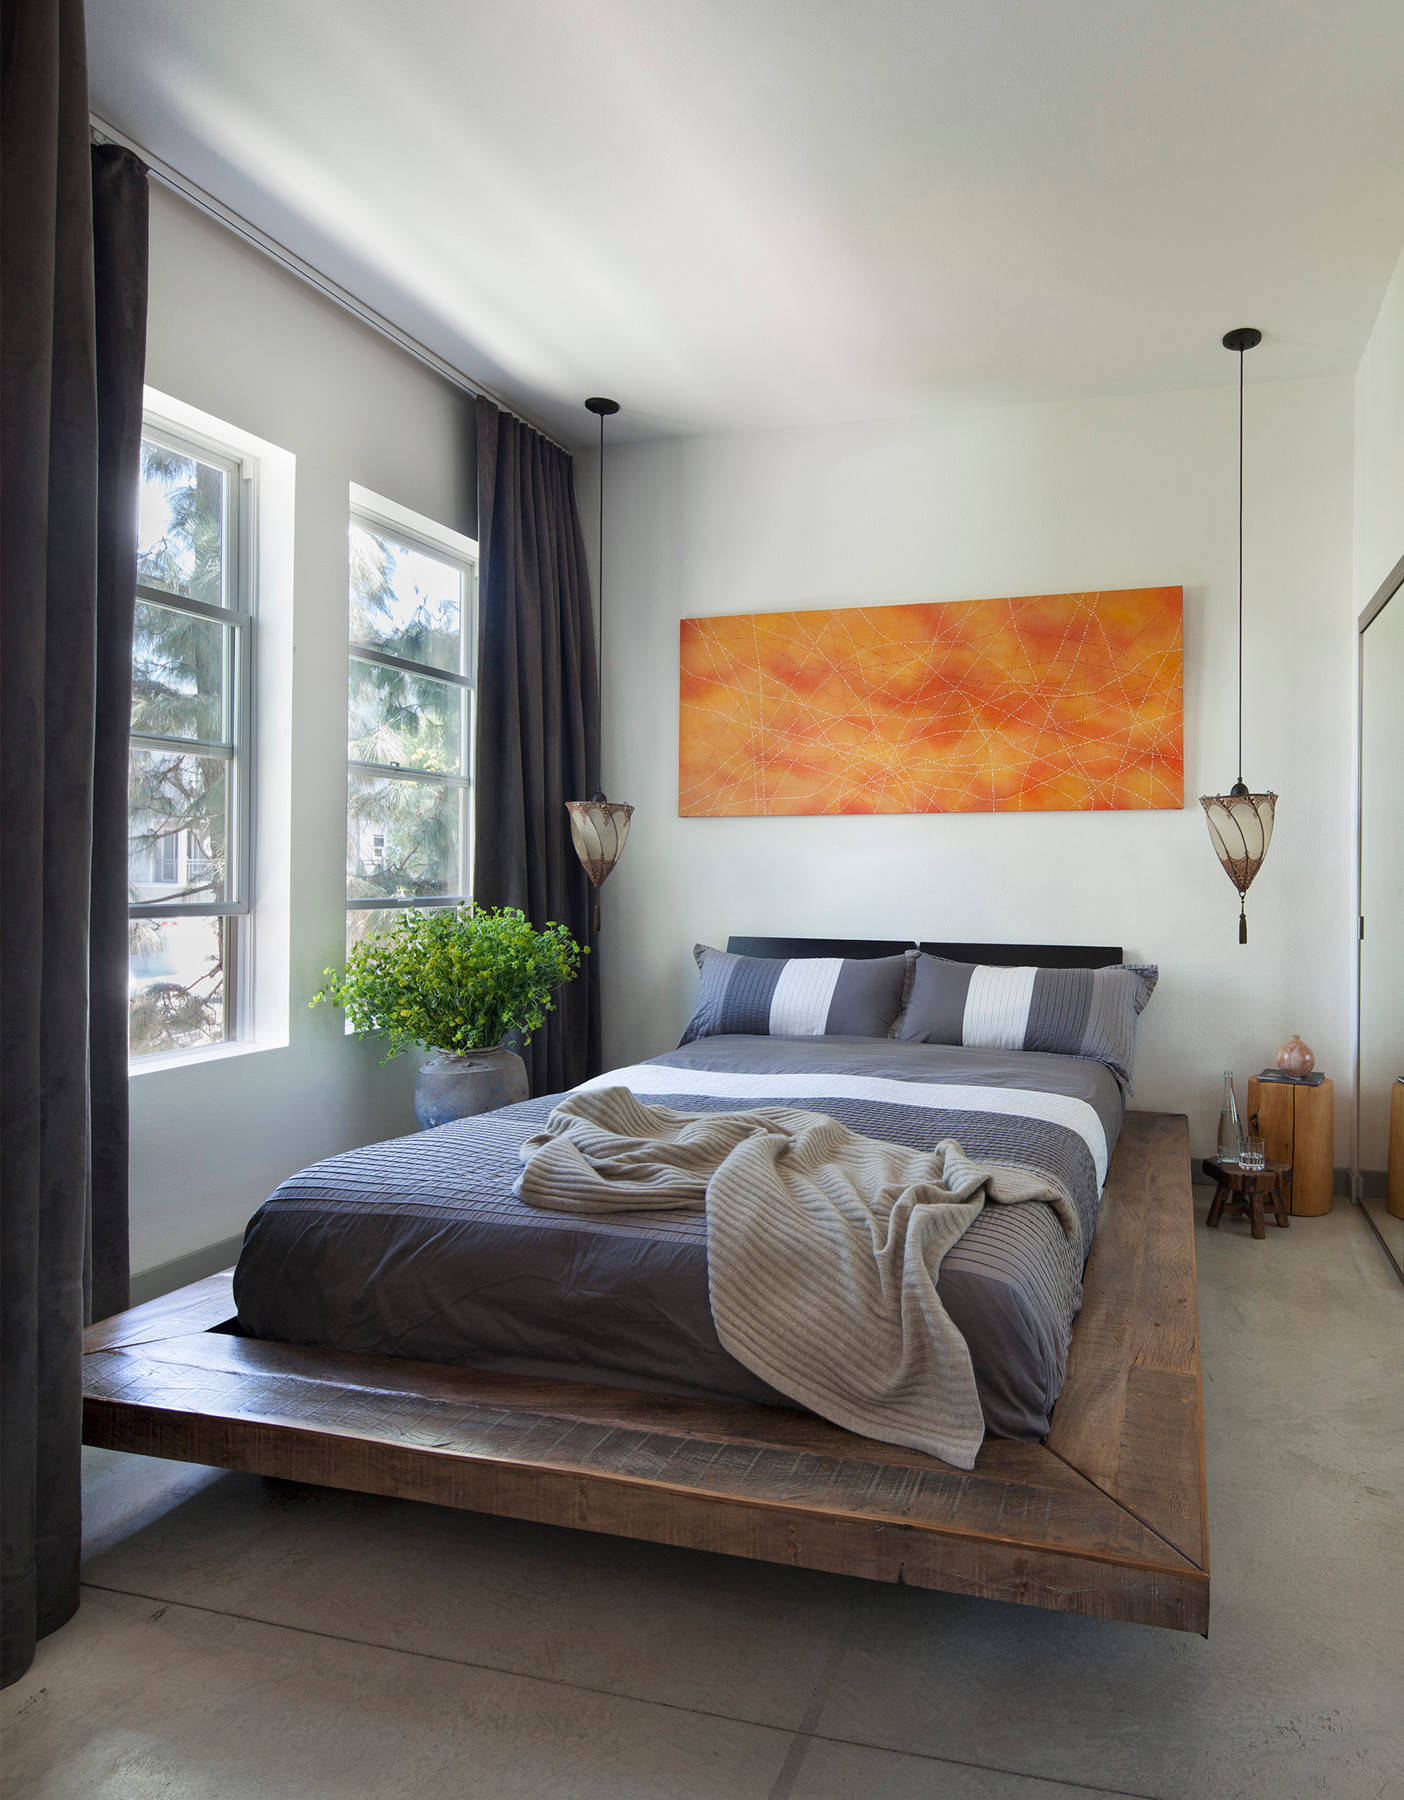 11 Beautiful Industrial Bedroom Pictures & Ideas - January, 11